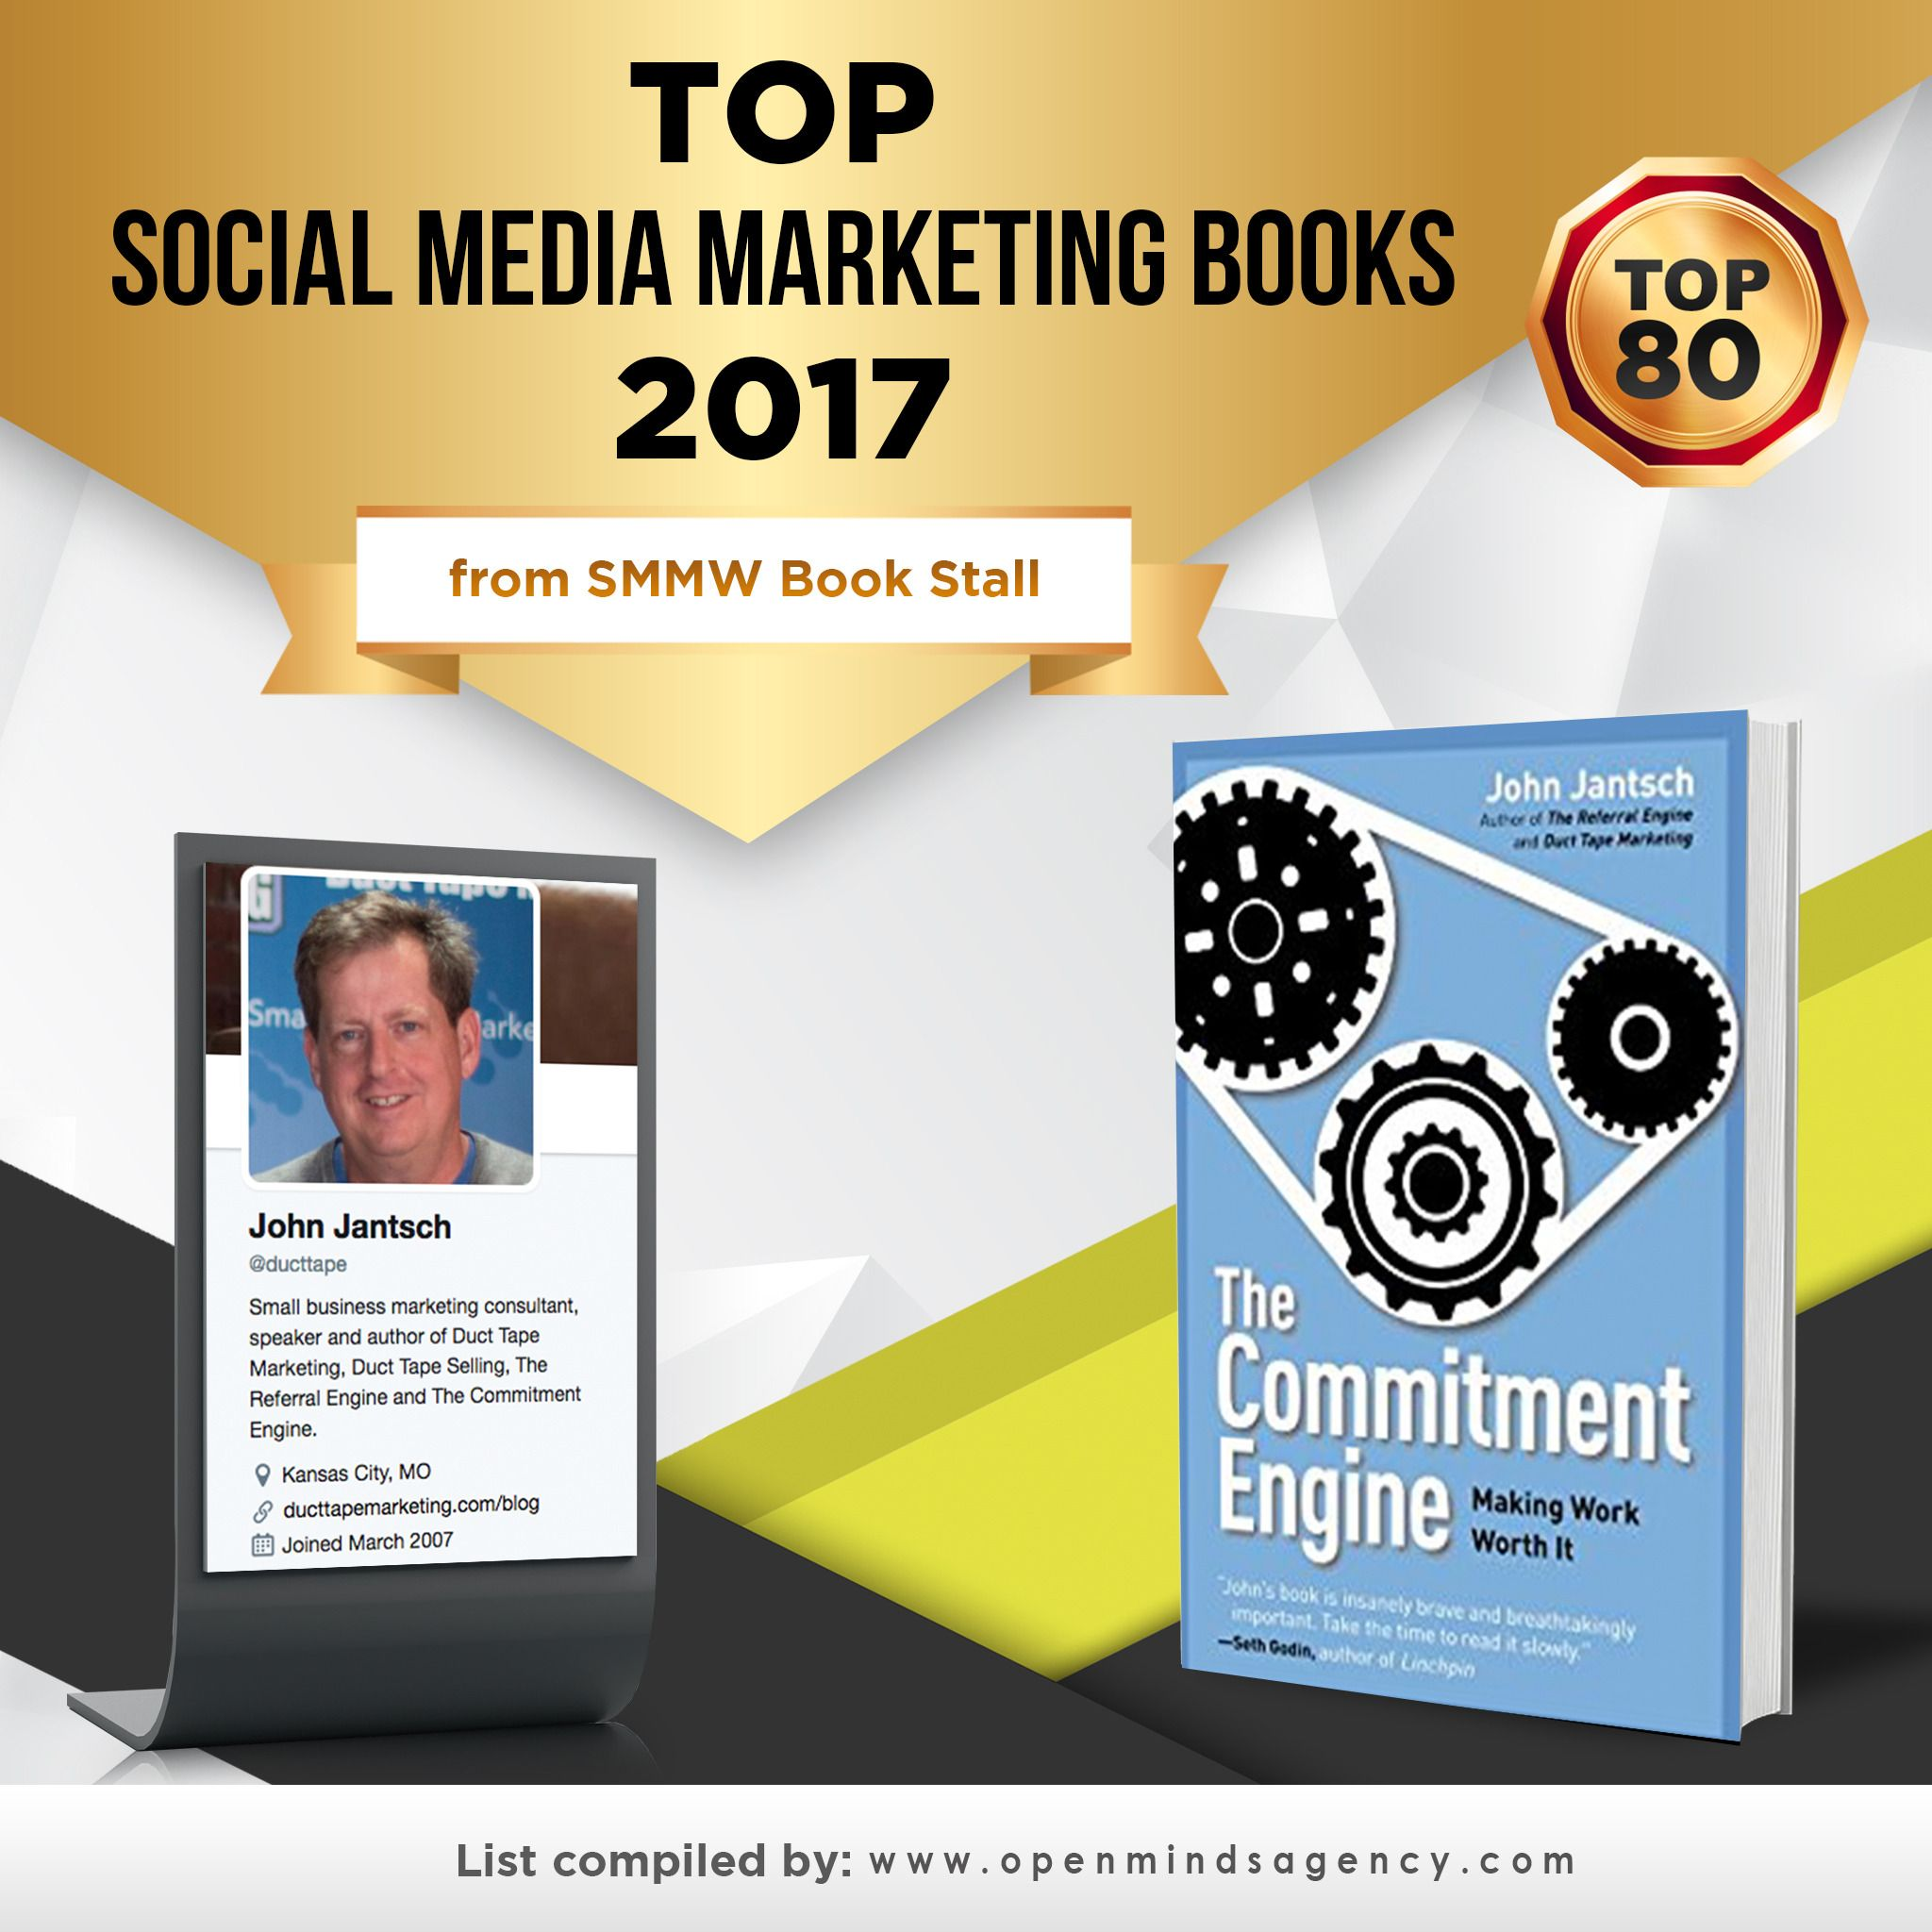 Top #SocialMedia #Books 2017: The Commitment Engine by @ducttape.   Full list: http://openmindsagency.com/top-social-media-marketing-books?utm_source=pinterest&utm_medium=link&utm_campaign=quote59-omaoma0058 #omagency #socialmedia #books